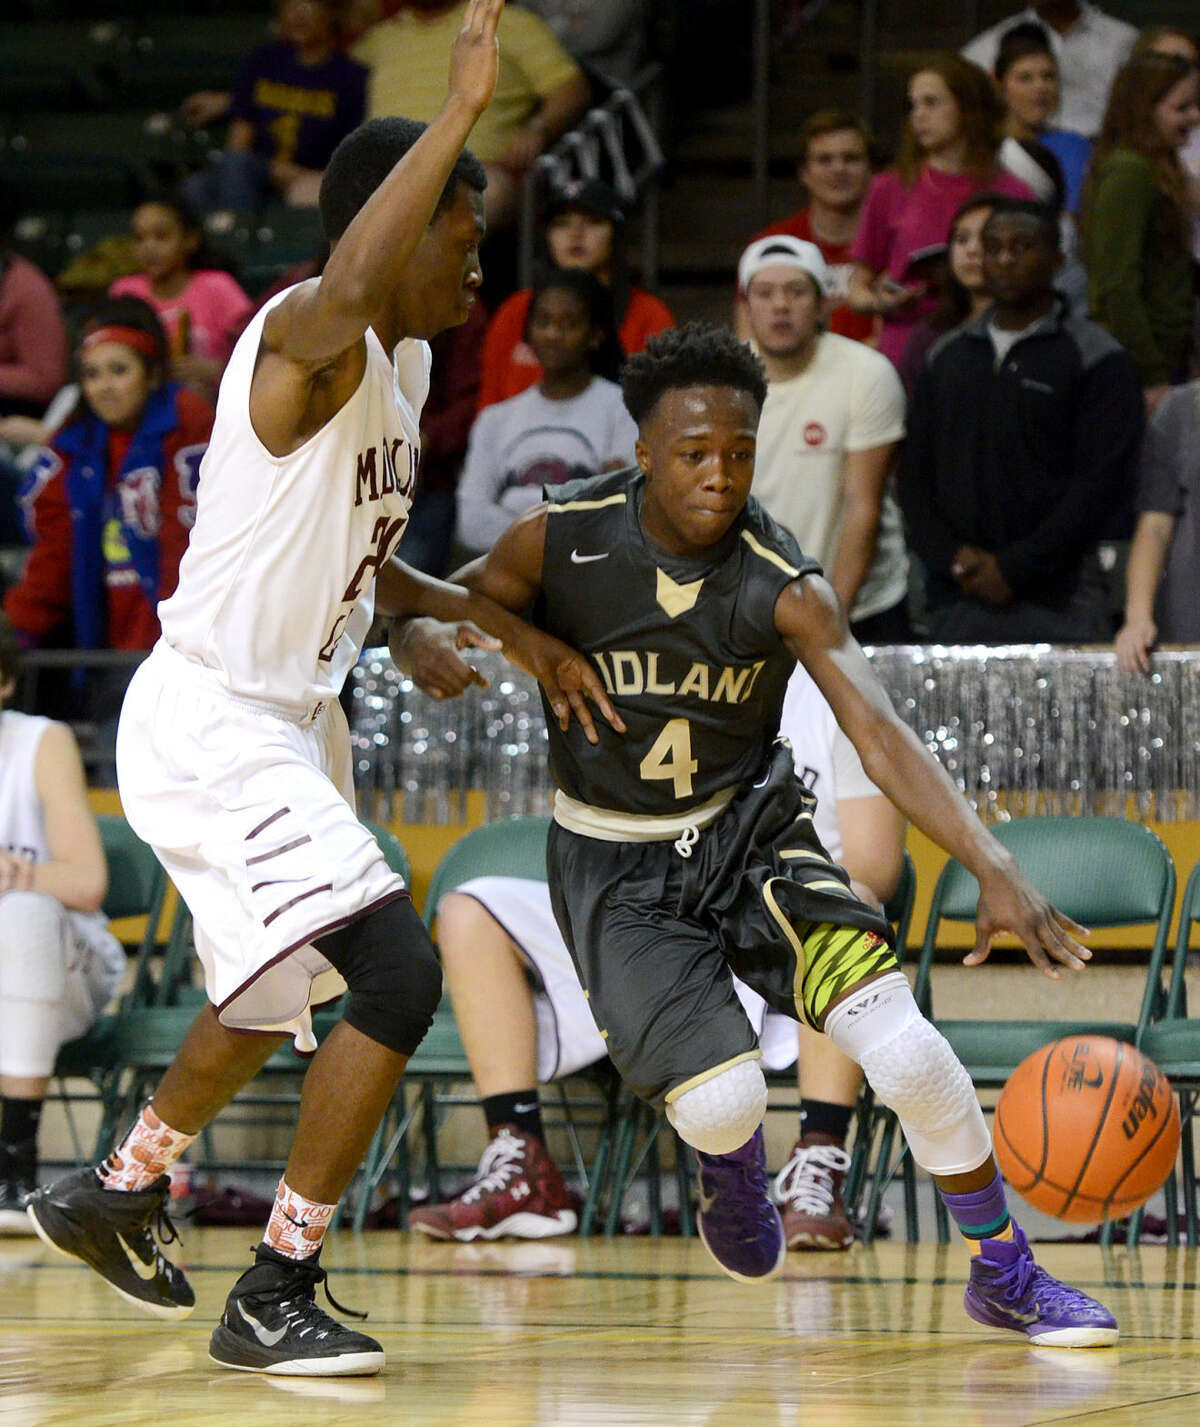 Midland High's A.D. Johnson (4) drives to the hoop against Lee's James Lydia (24) on Tuesday, Feb. 10, 2015 at Chaparral Center. James Durbin/Reporter-Telegram